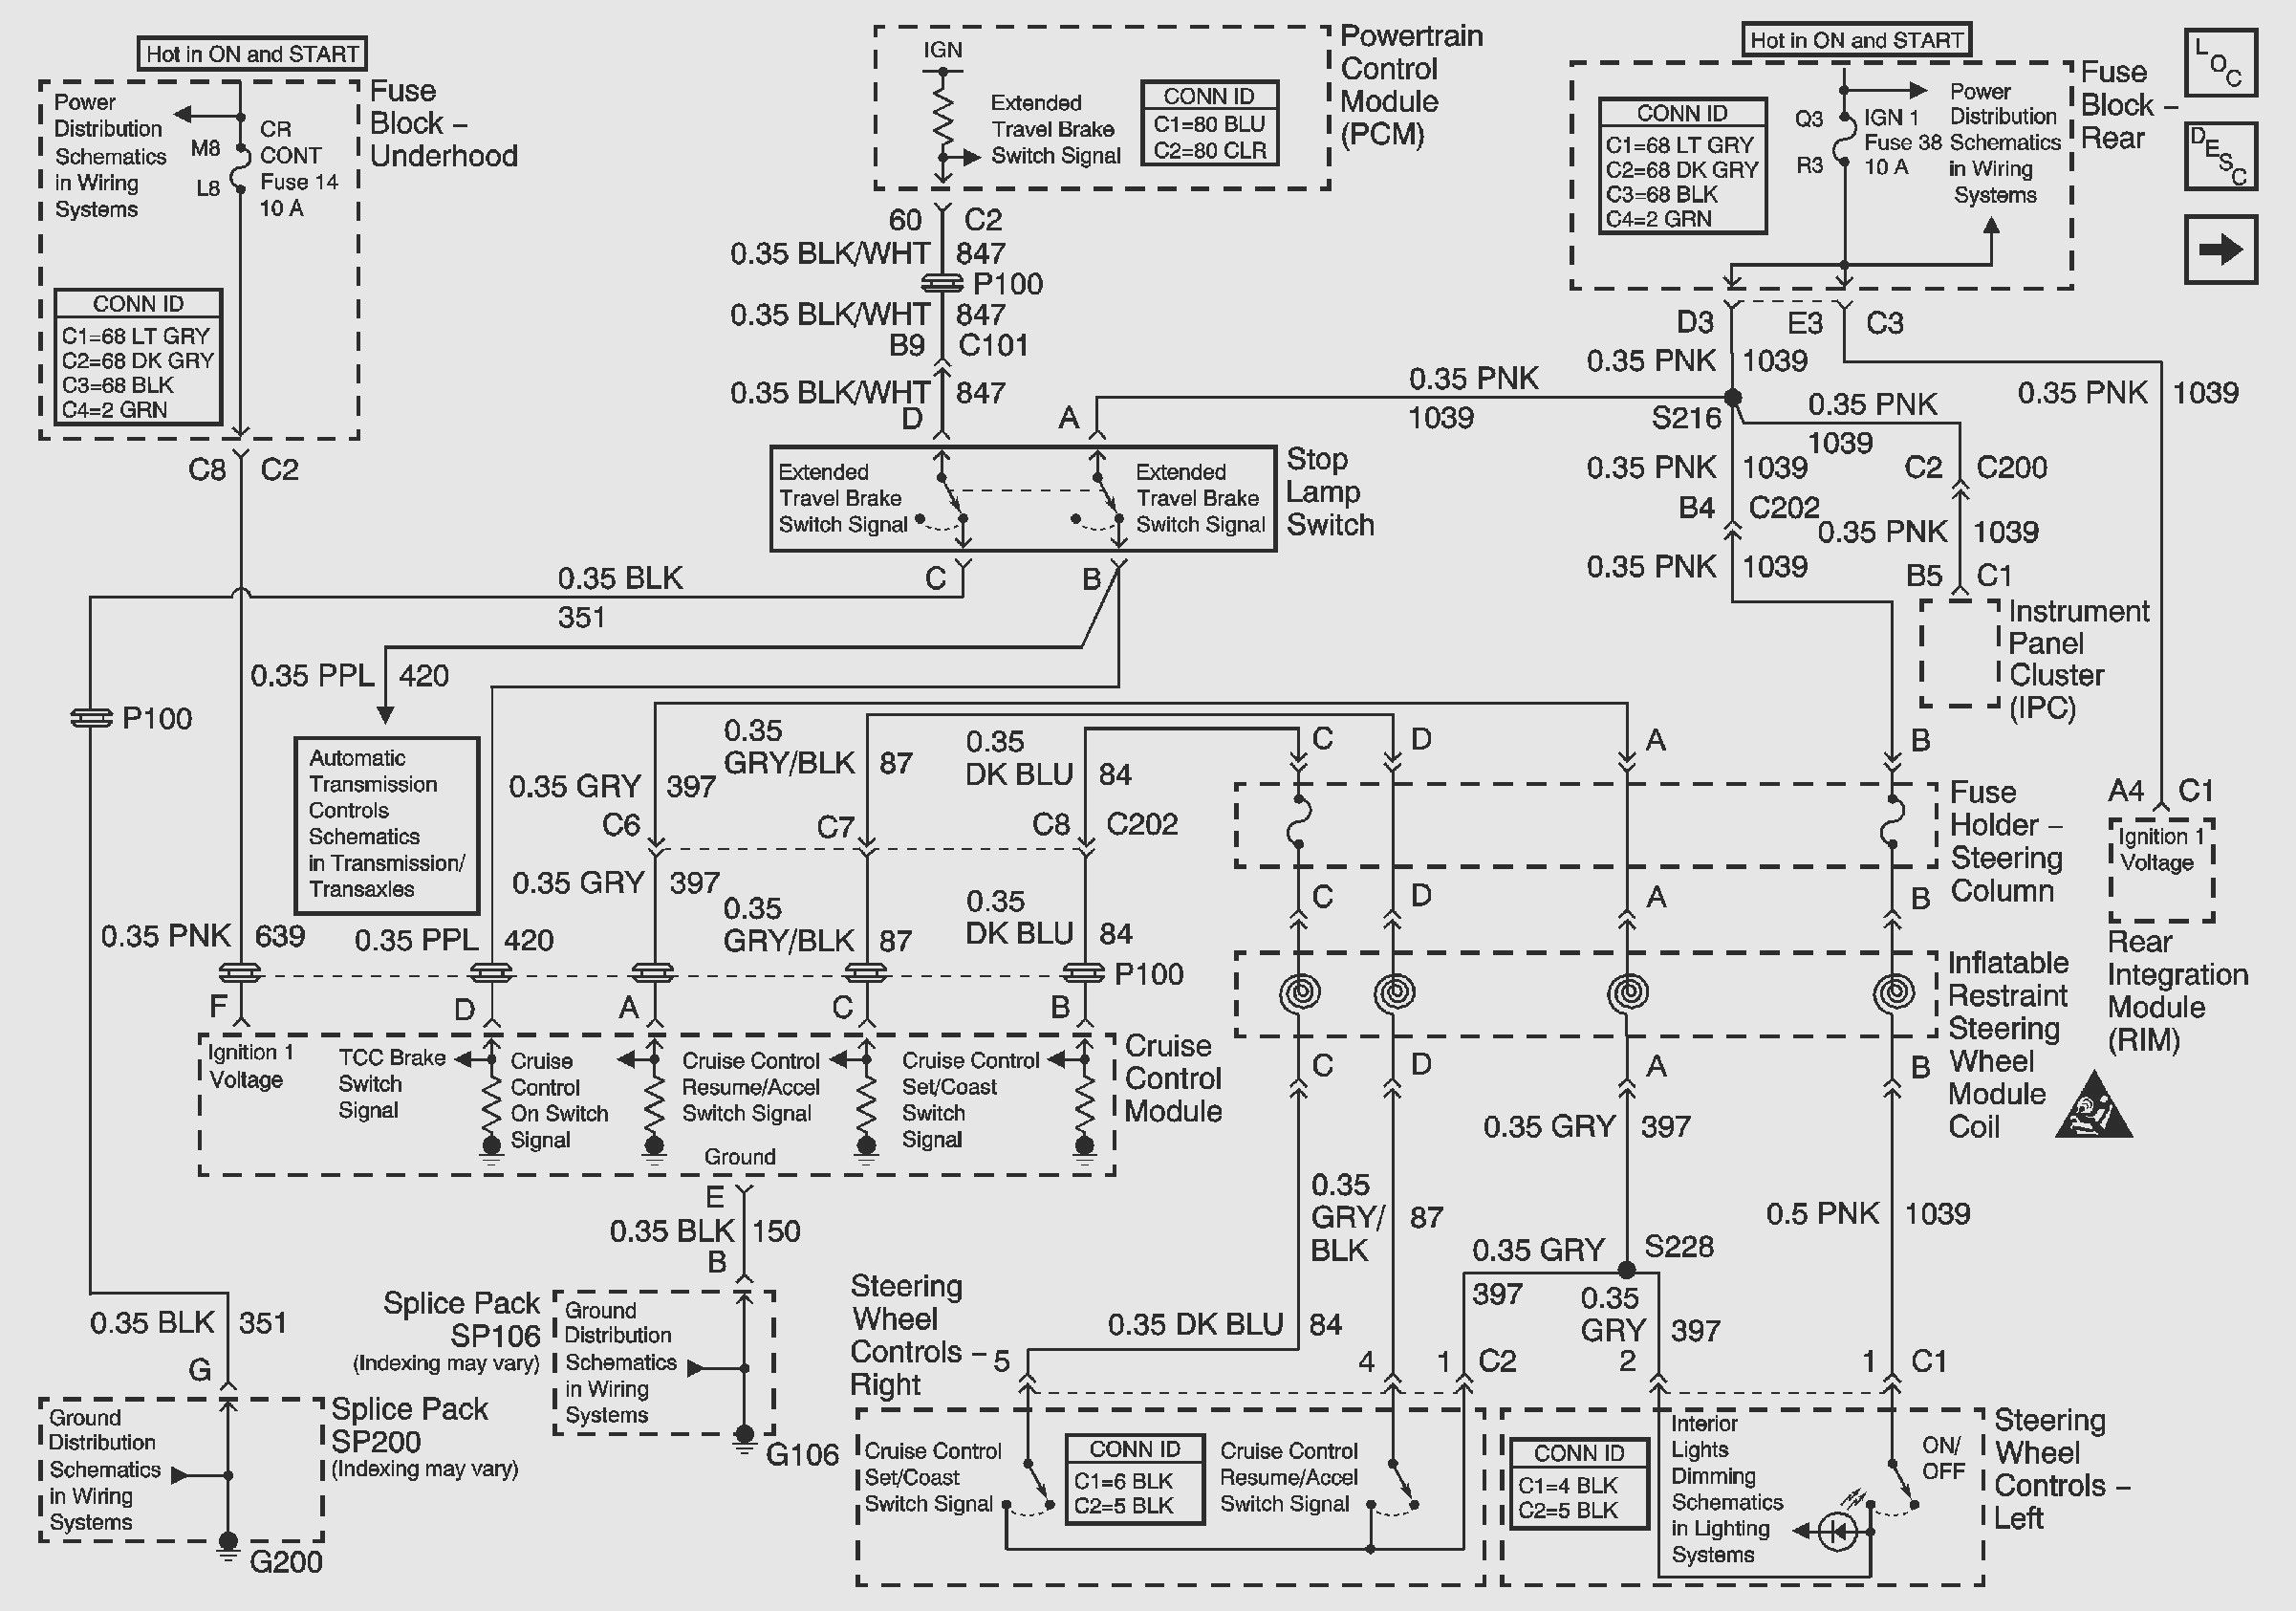 Awesome 2001 Buick Lesabre Radio Wiring Diagram In 2020 Buick Lesabre New Bmw Bmw